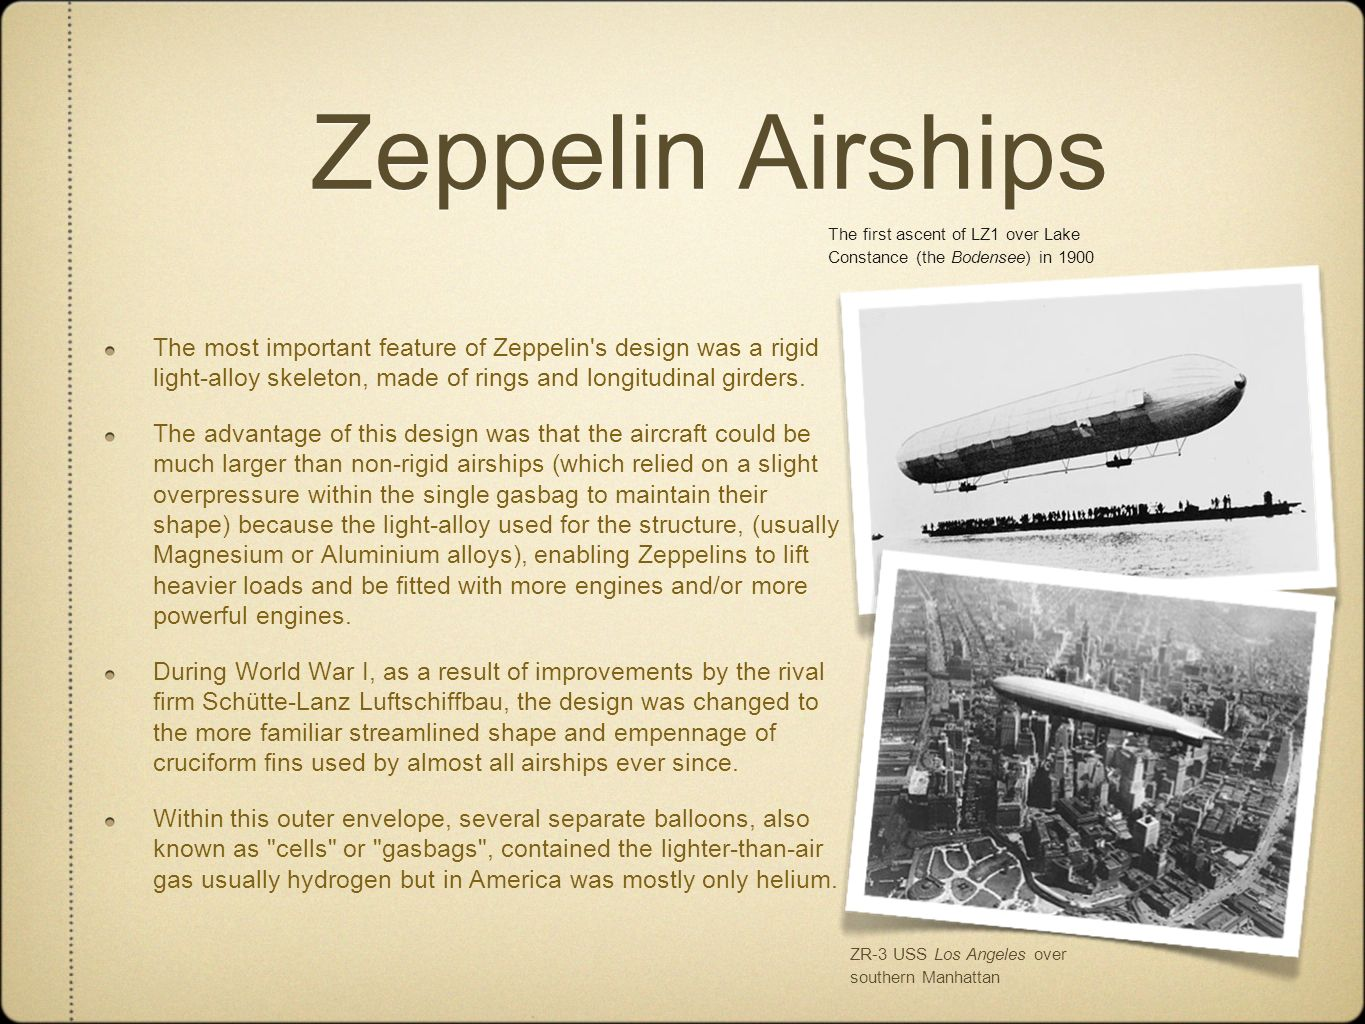 Zeppelin Airships The most important feature of Zeppelin s design was a rigid light-alloy skeleton, made of rings and longitudinal girders.